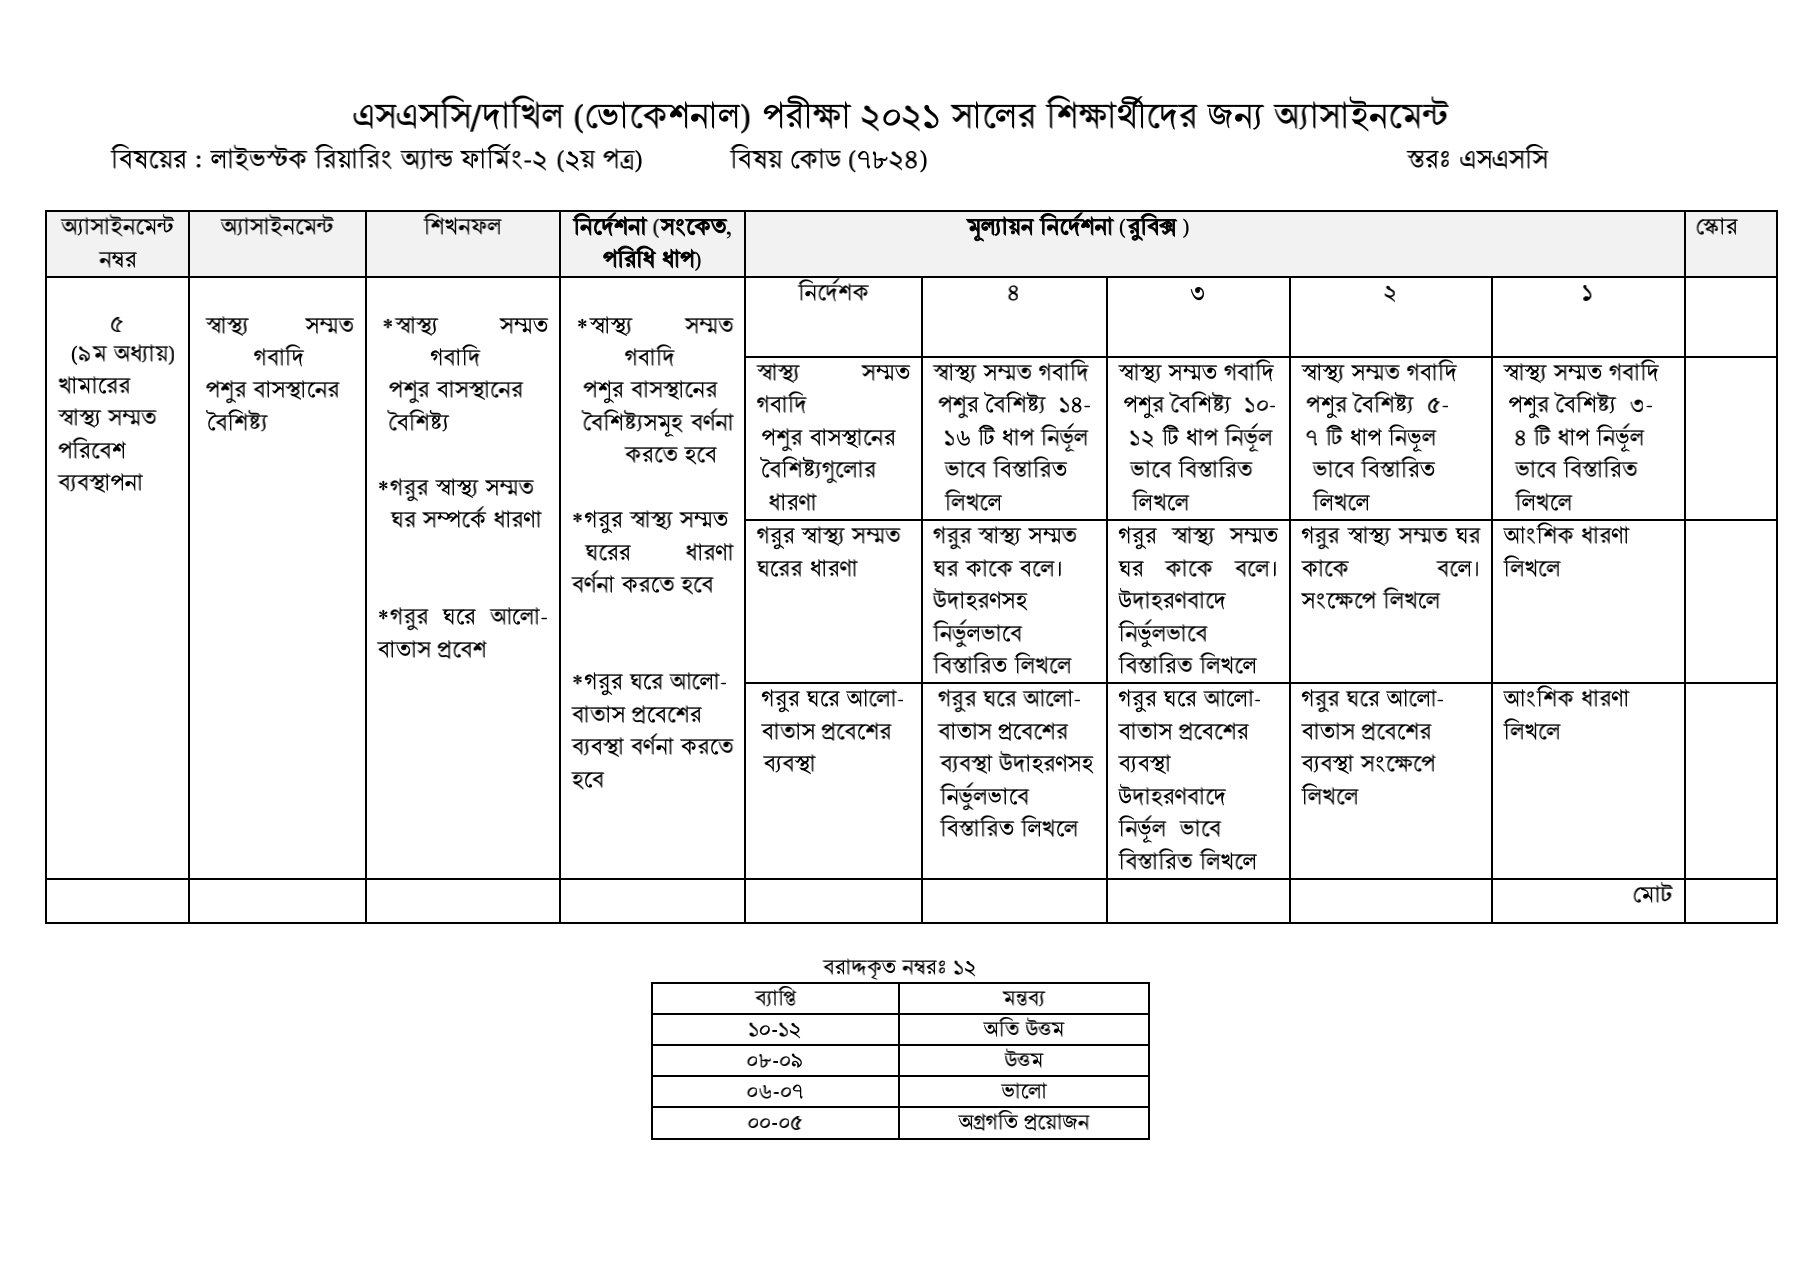 SSC / Dakhil (Vocational) Livestock Rearing and Farming Assignment Answer 2021 13